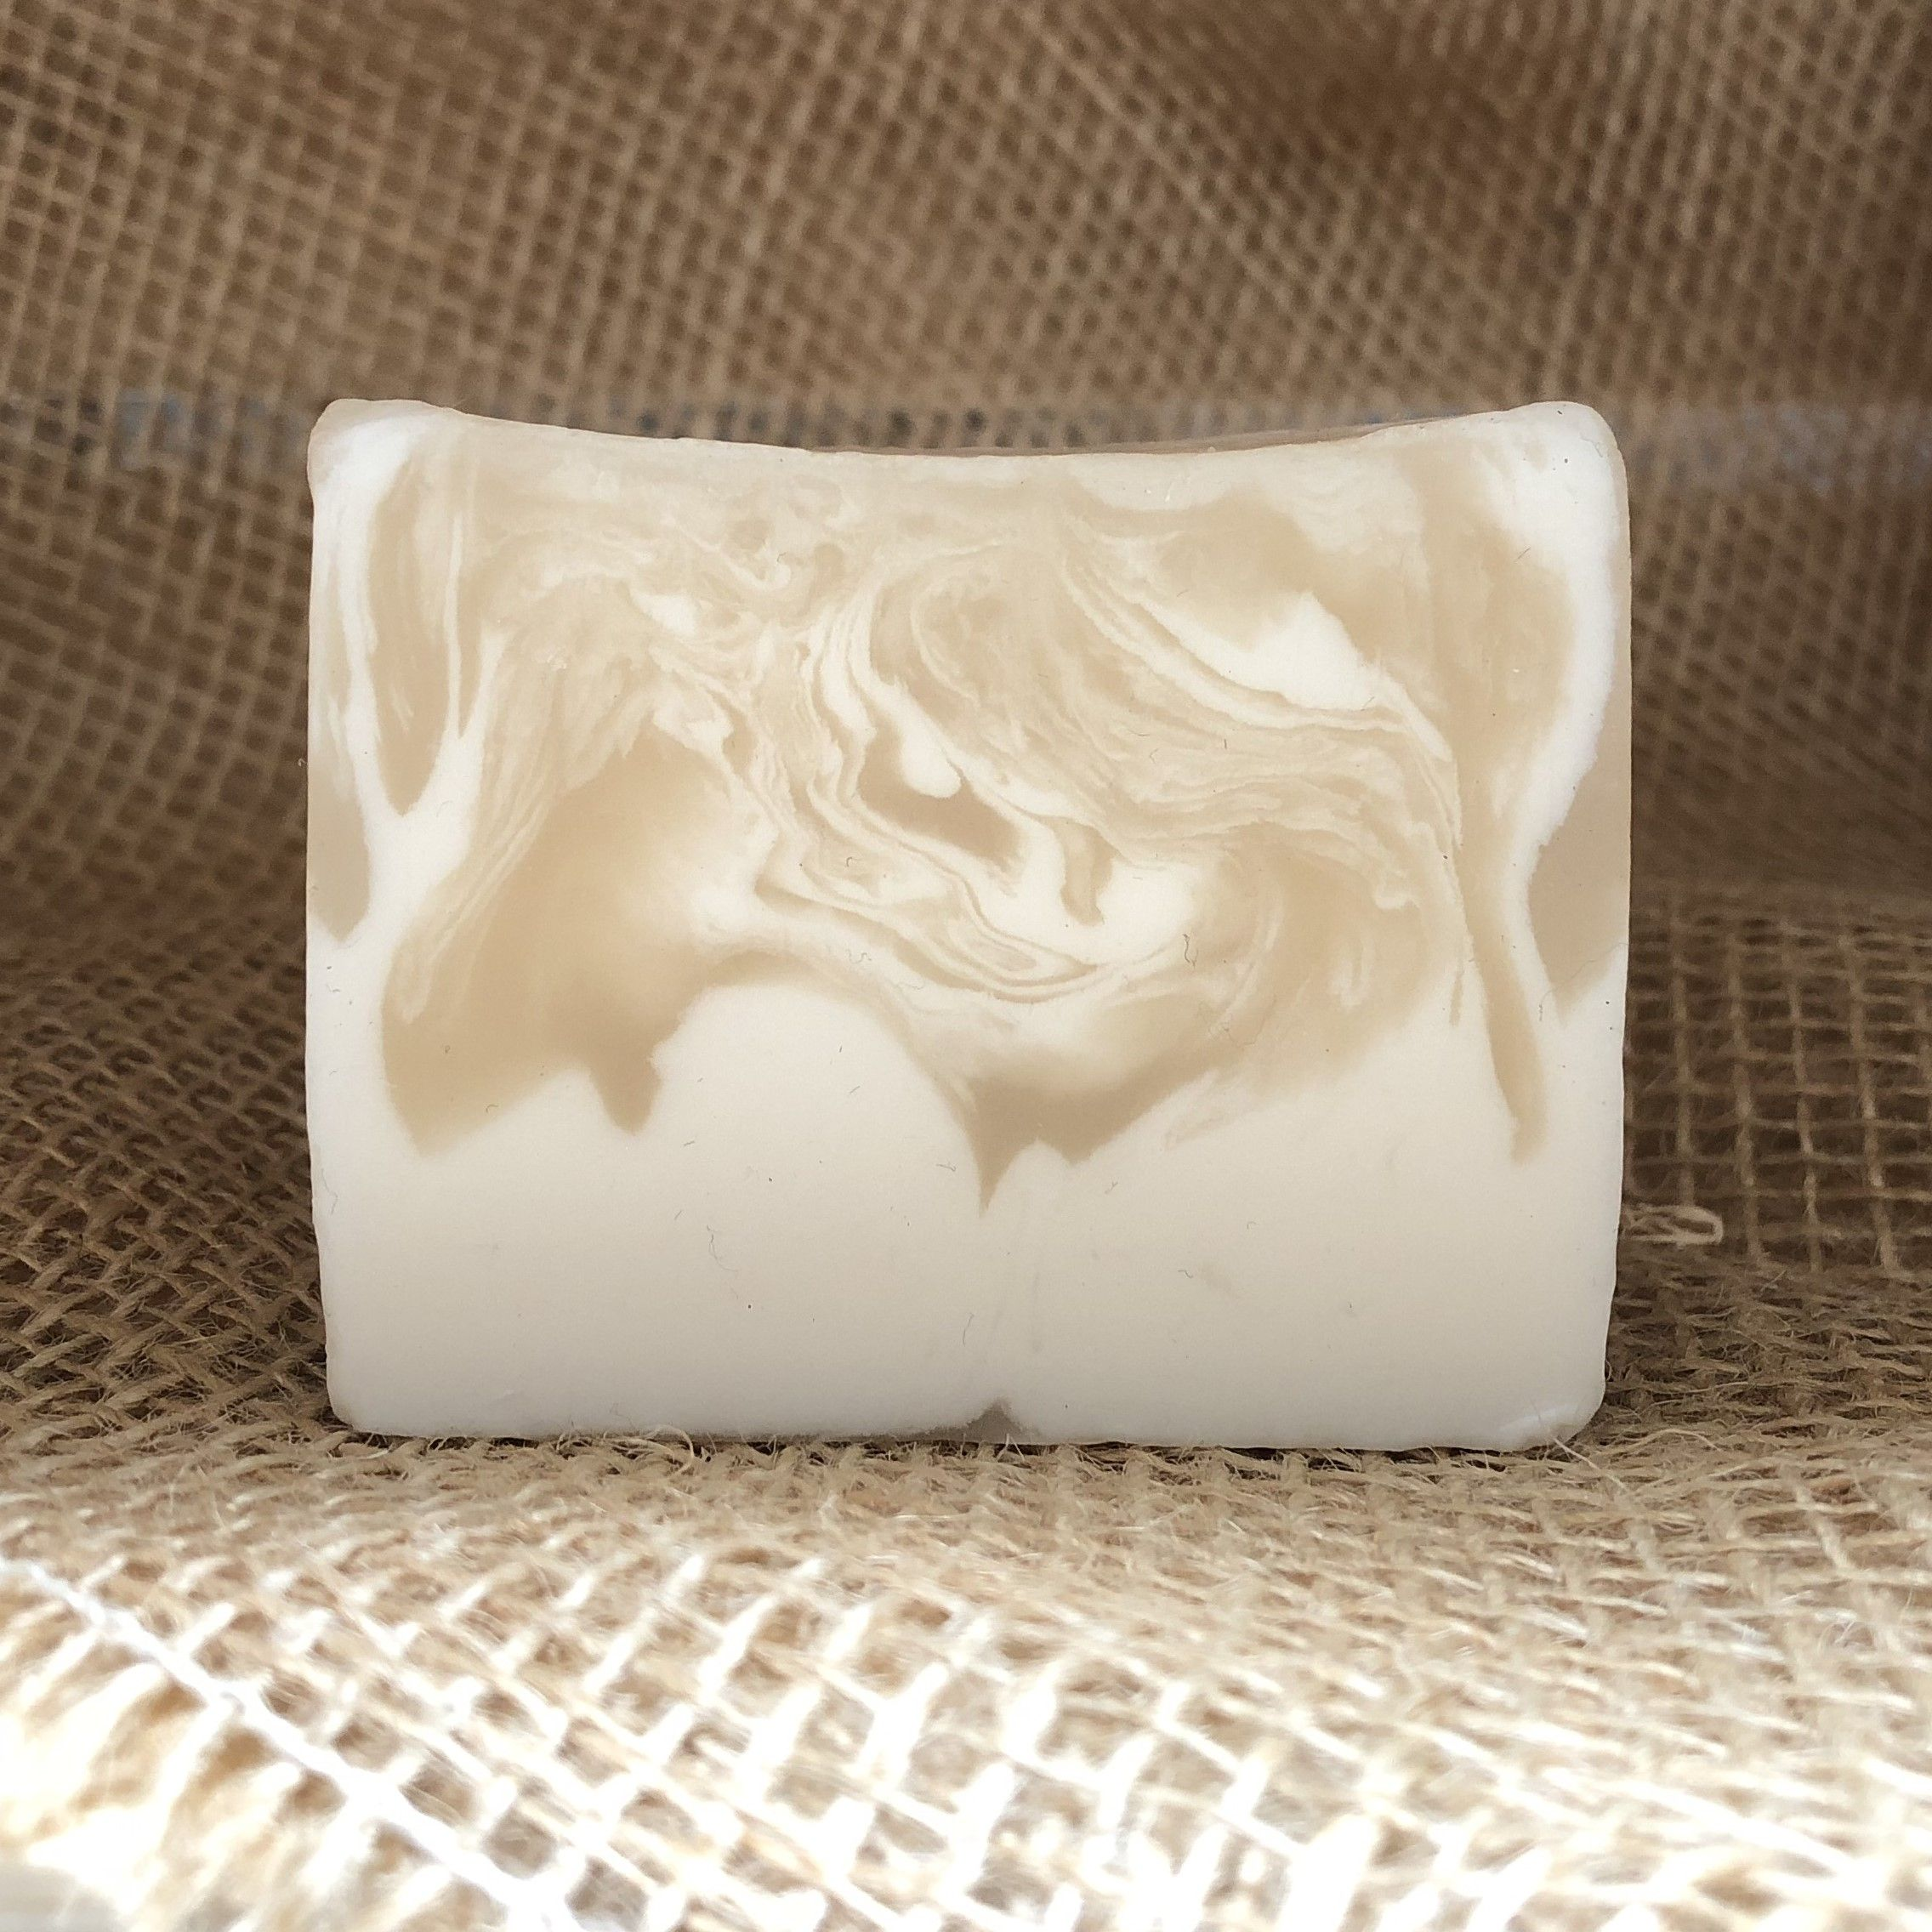 Soap - Large Lemon Glycerin